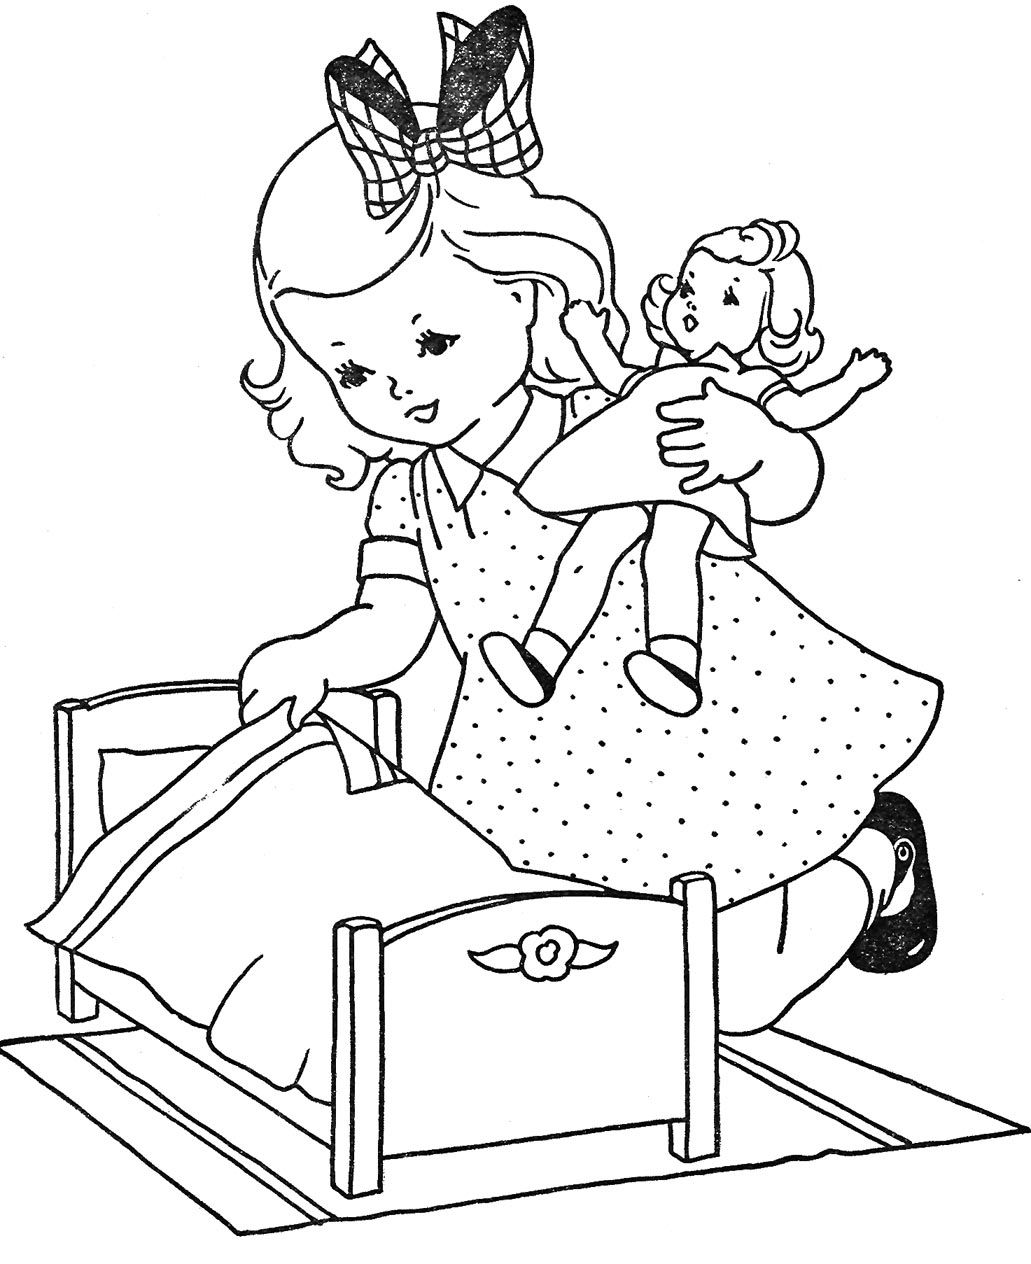 childrens colouring pictures free printable bambi coloring pages for kids childrens colouring pictures